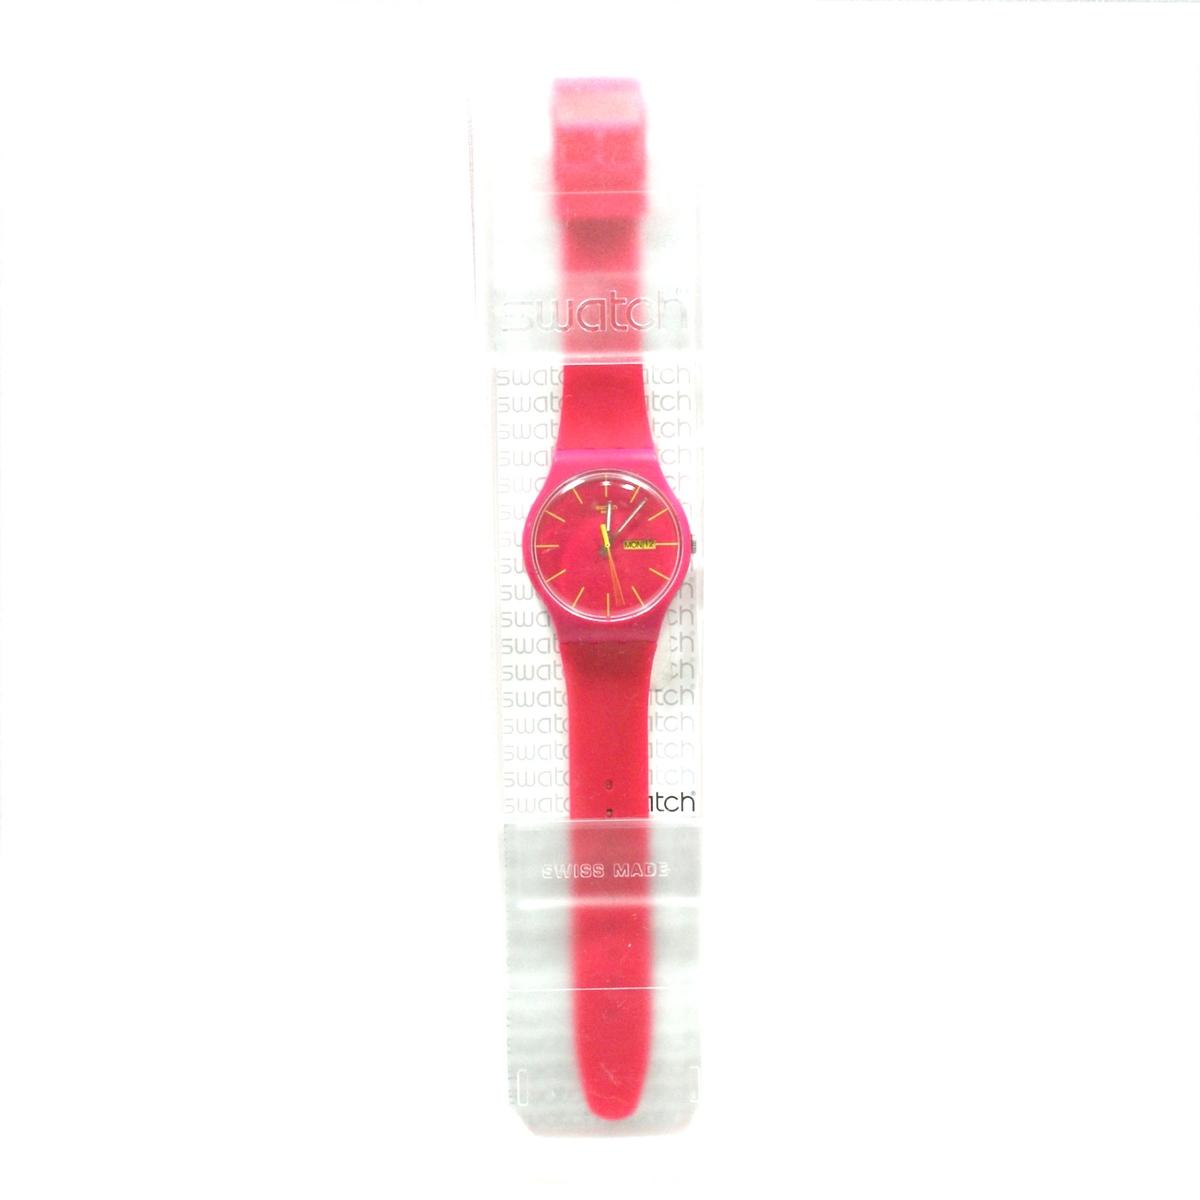 Swatch Rubine Rebel Pink Silicone Watch Suor704 Swatch